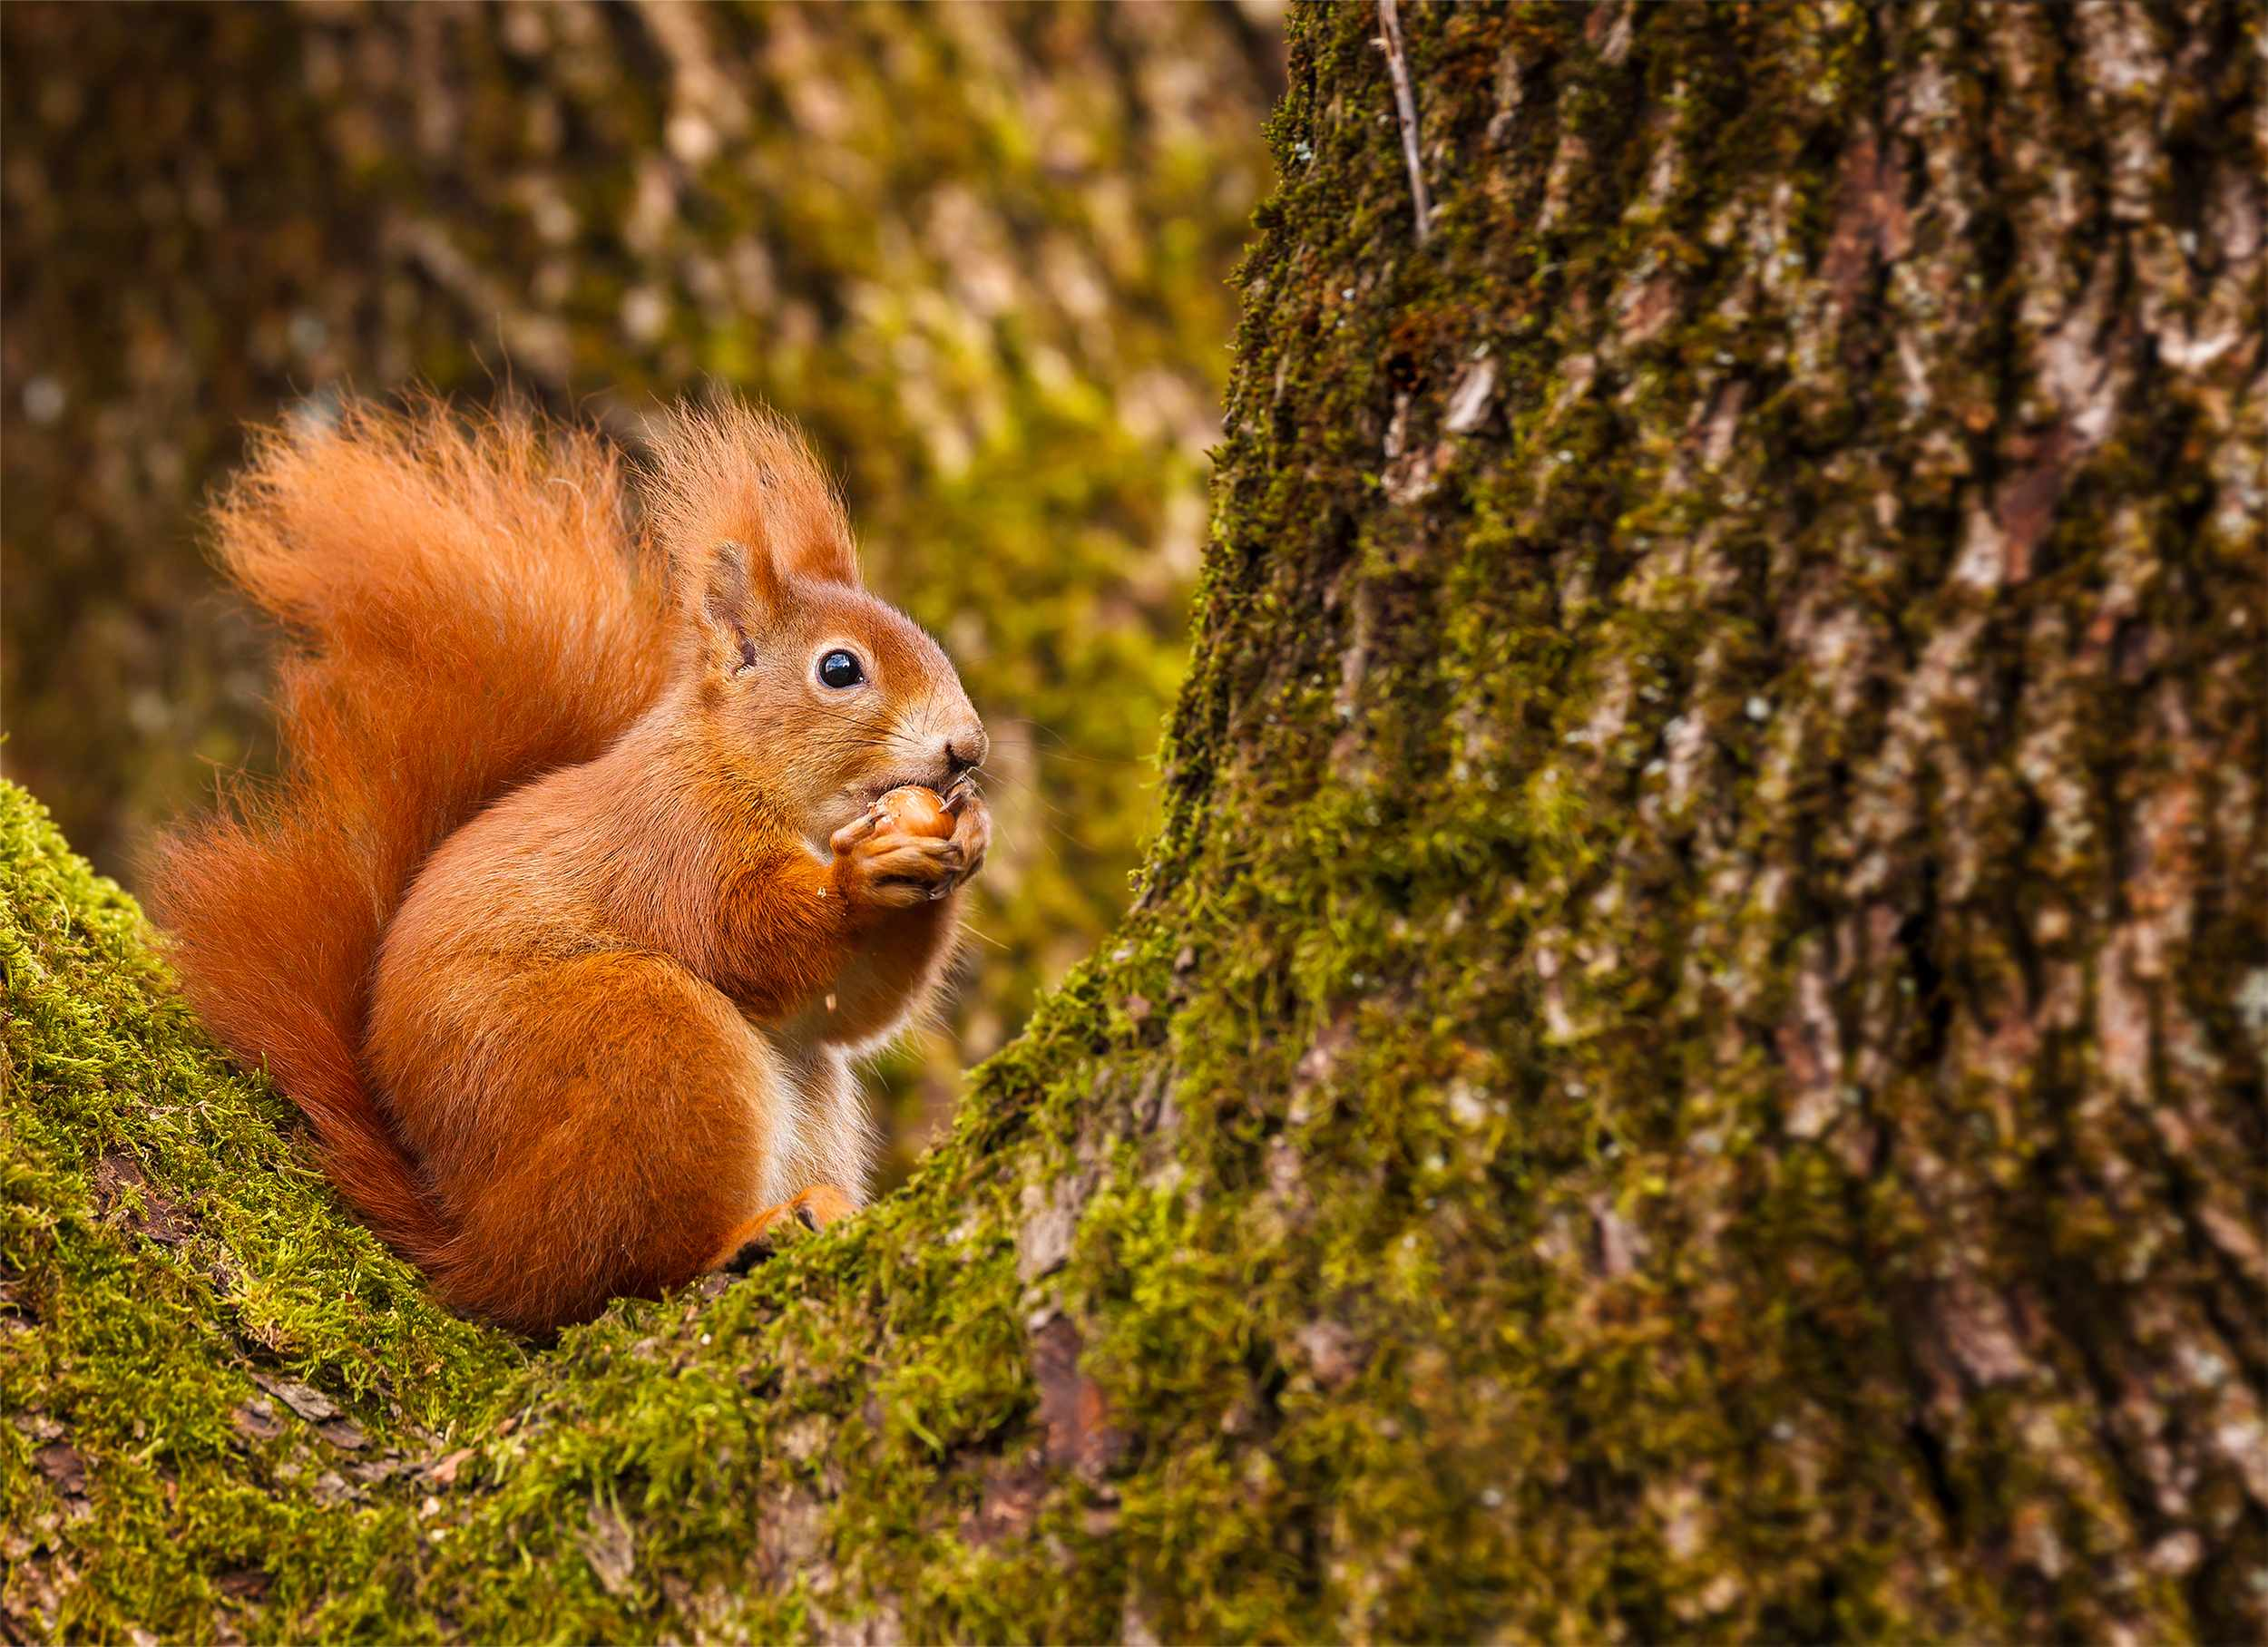 Red squirrel munching on a hazel nut © Neil Burton / Getty